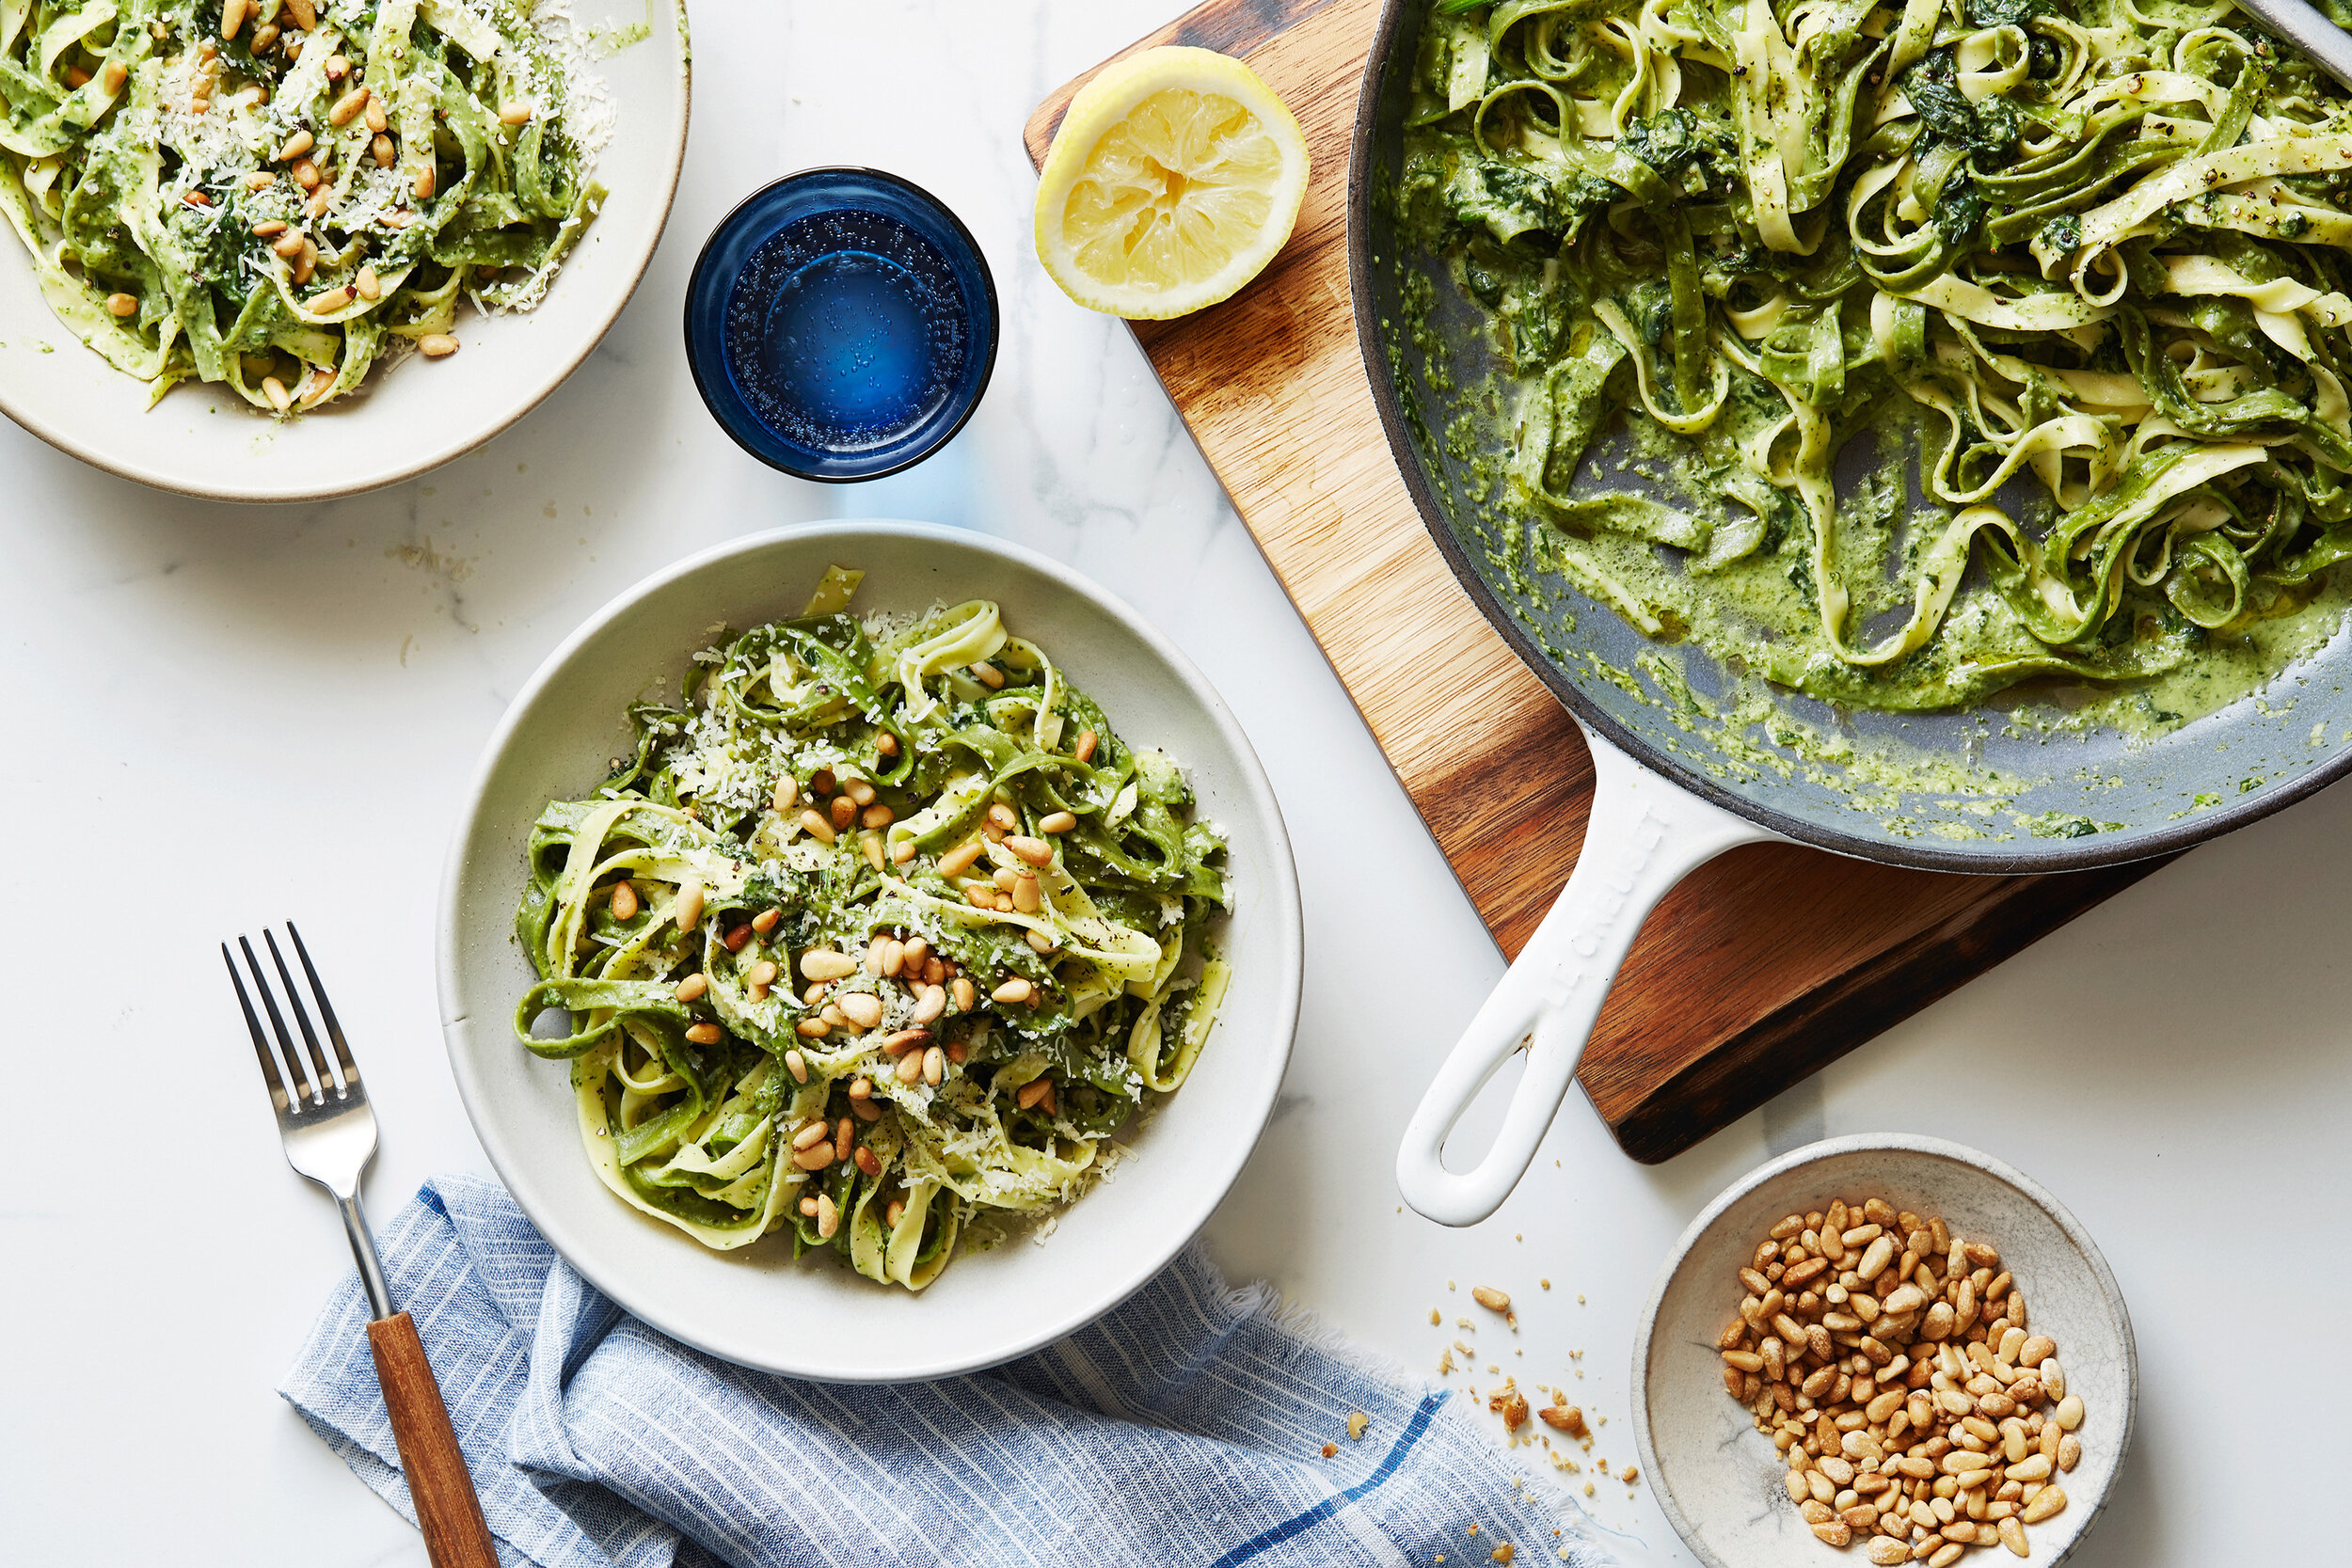 RR_30MM_Straw_Hay_Spinach_Sauce_Pine_Nuts_0149.jpg